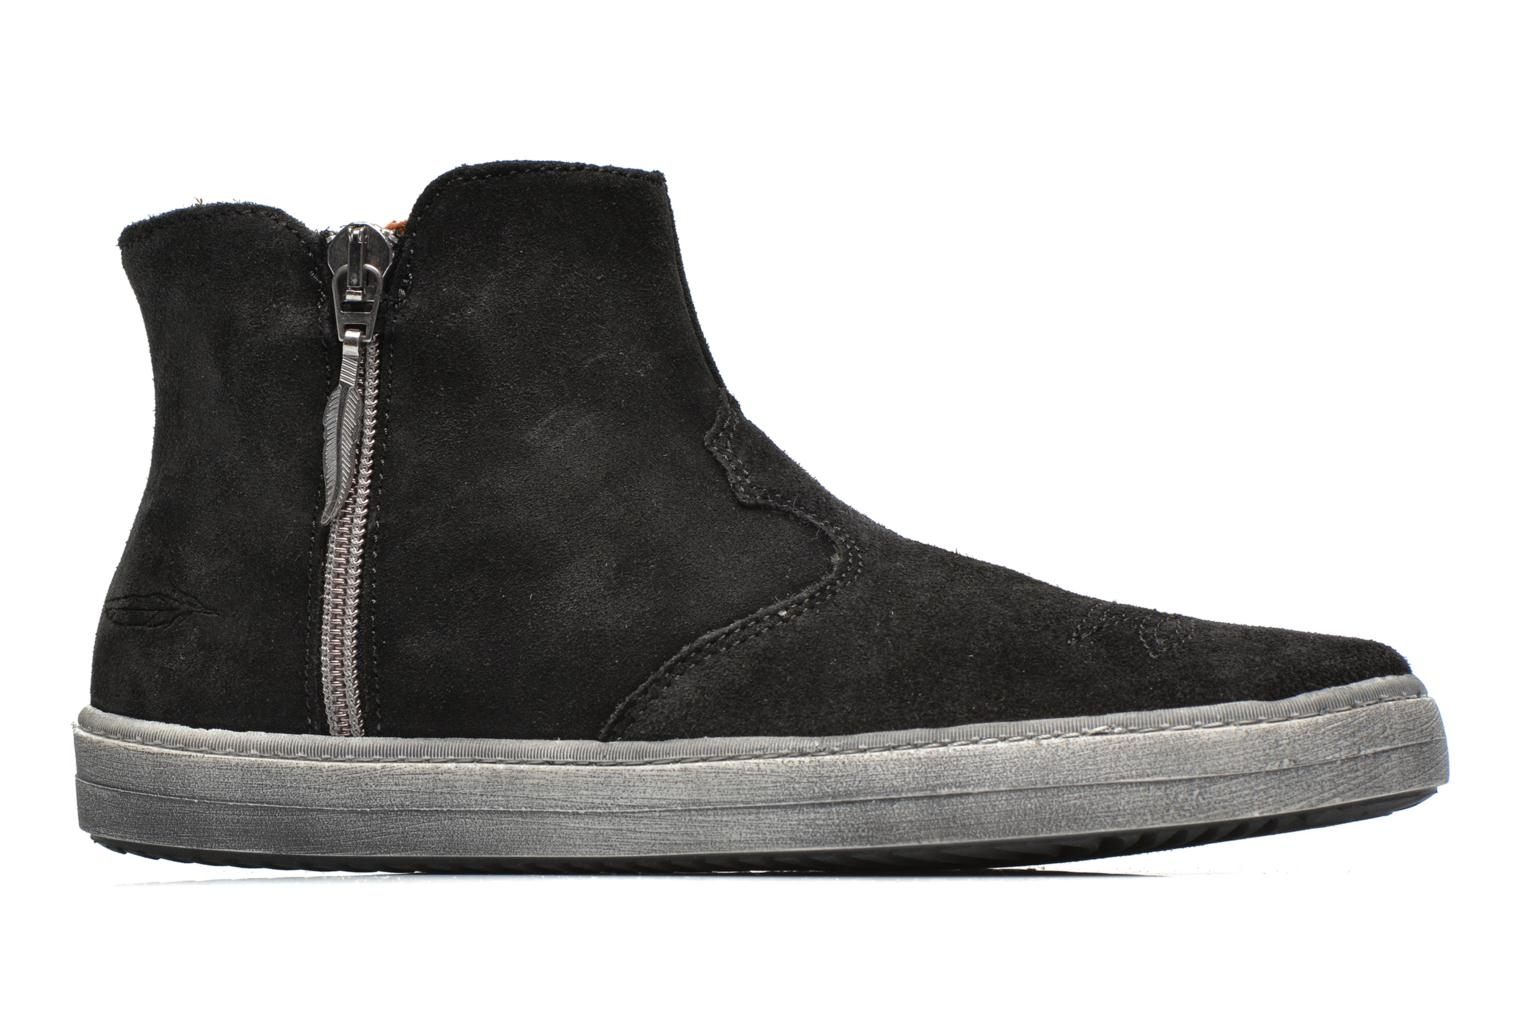 ADDICT ZIP WEST Black